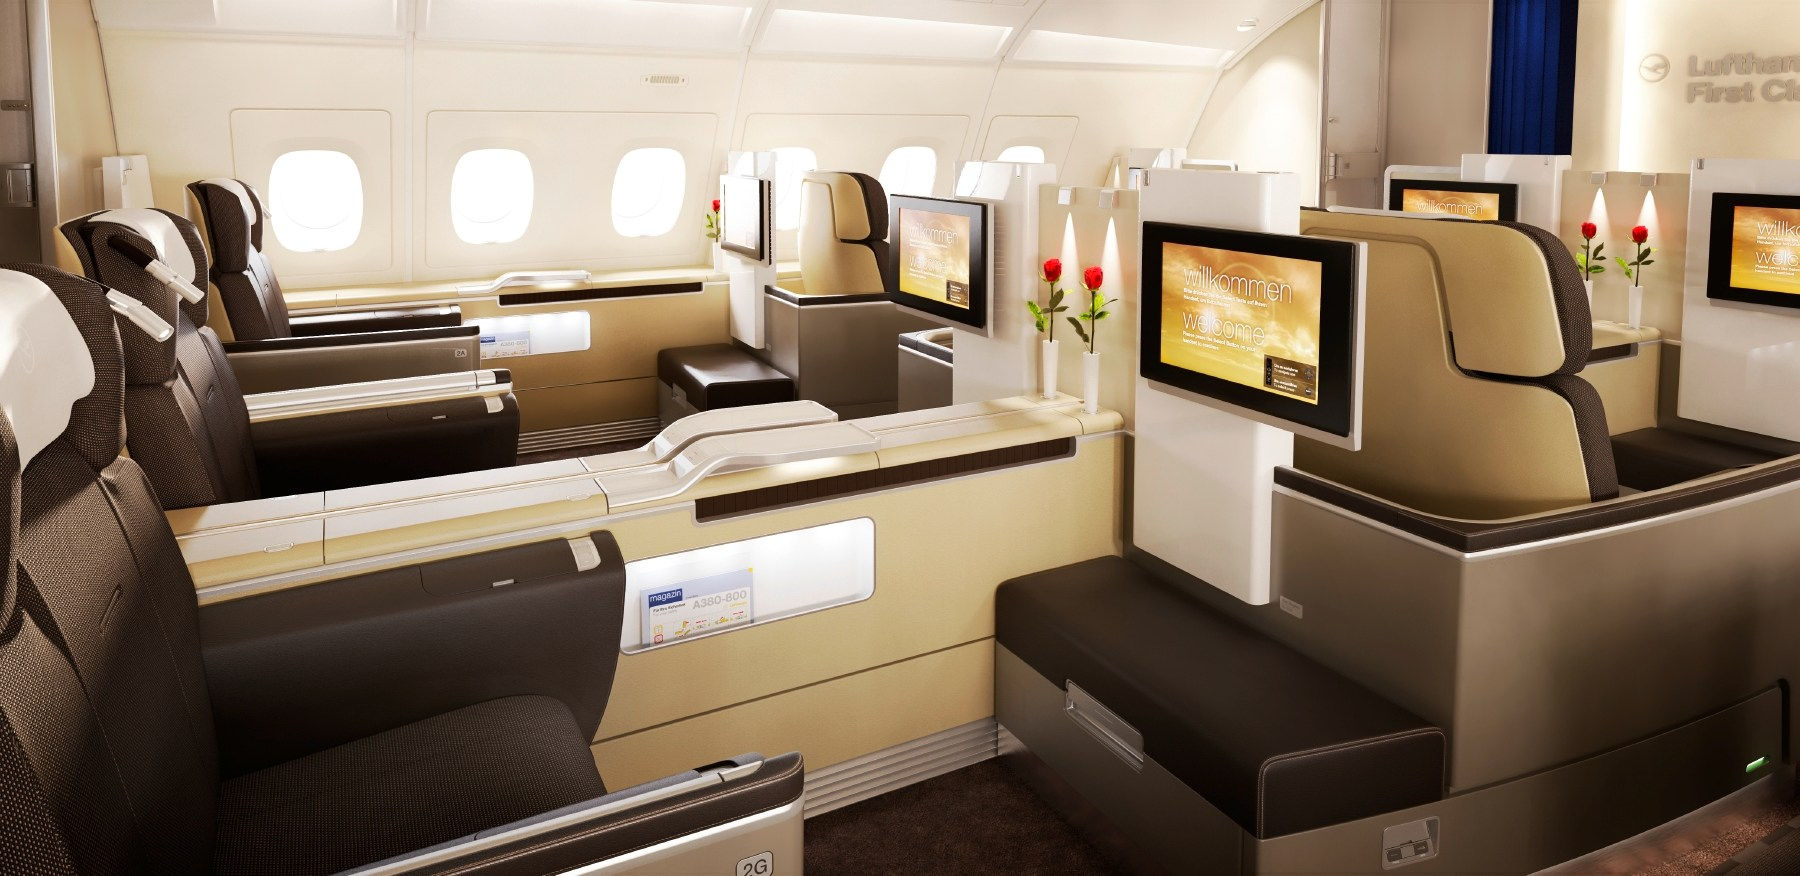 Seats we would have been in to Johannesburg...dang!